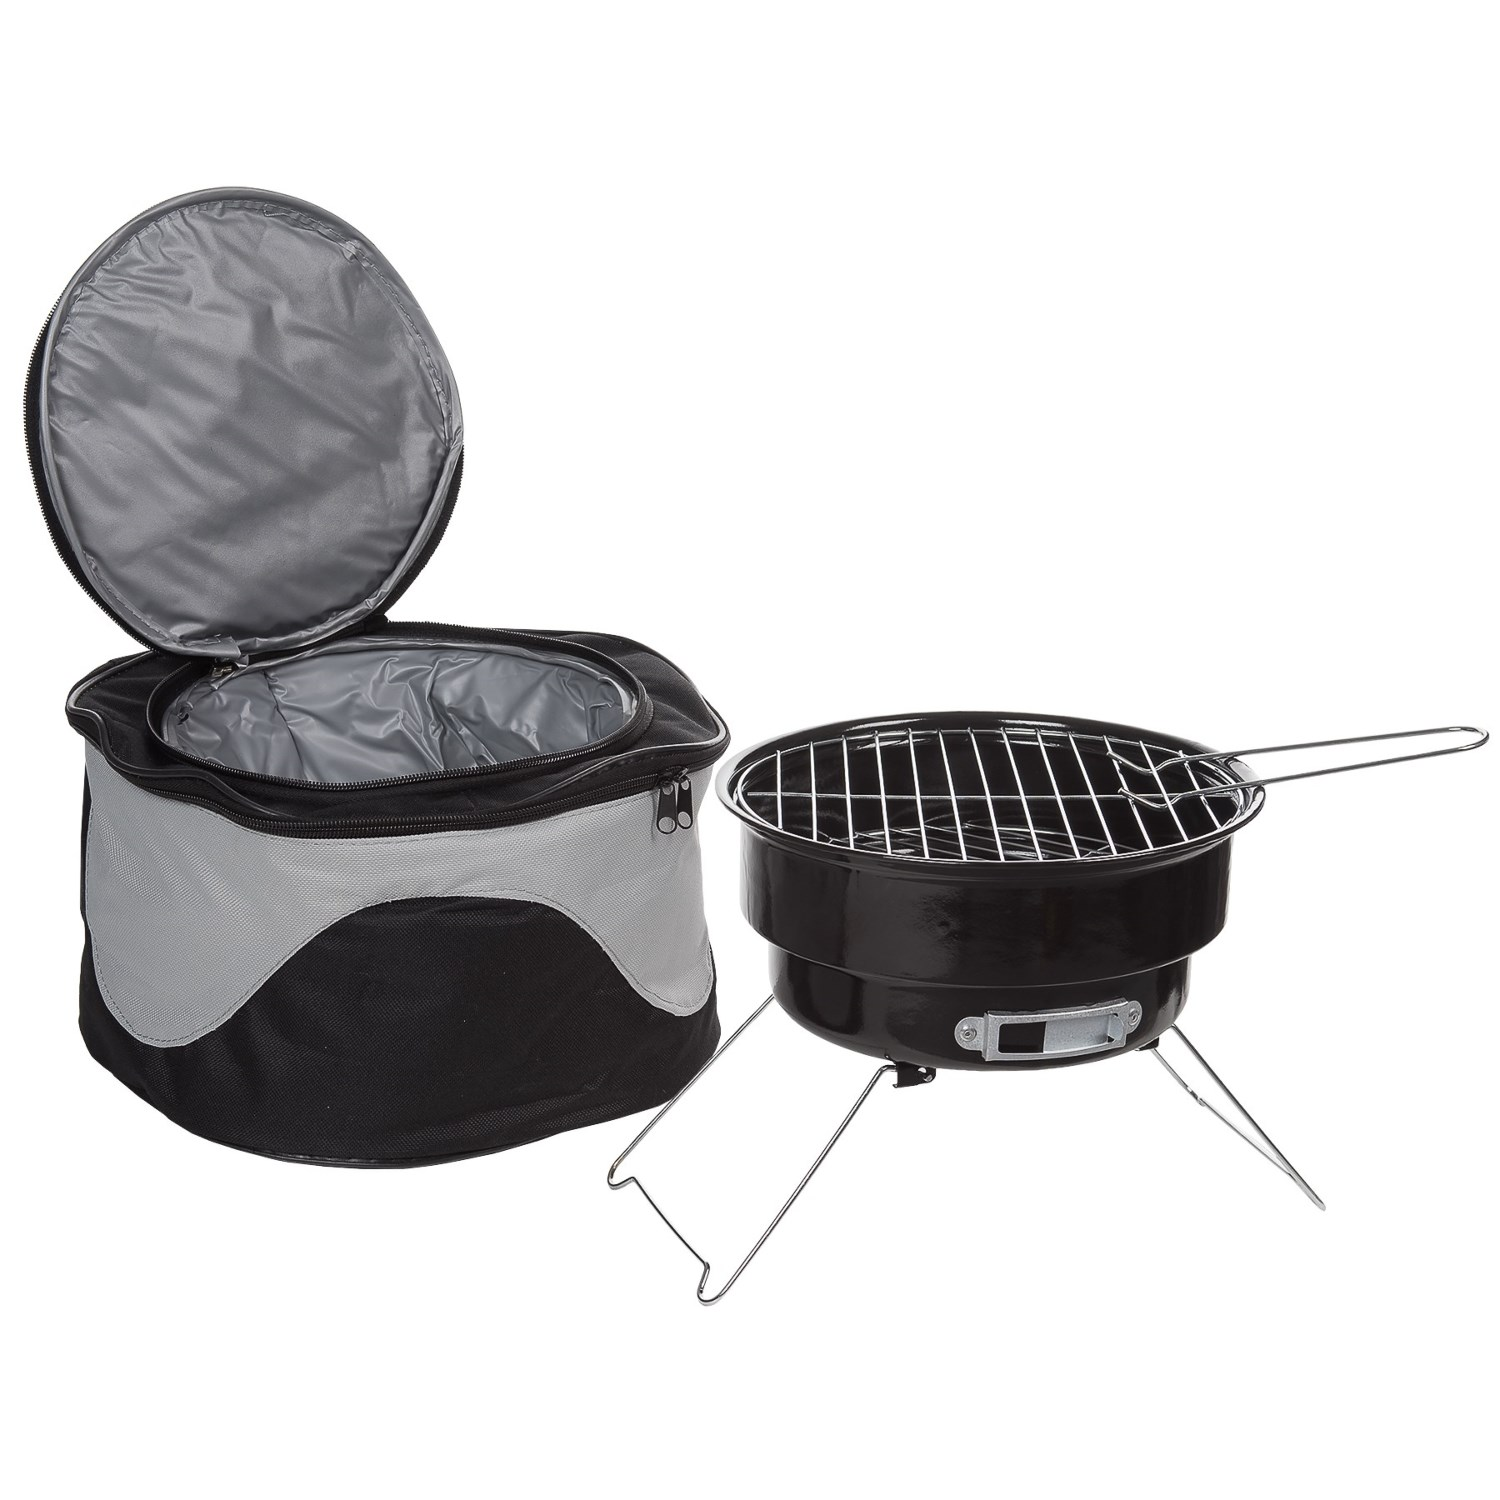 Big Backyard Portable Barbecue Grill And Cooler Bag Combo